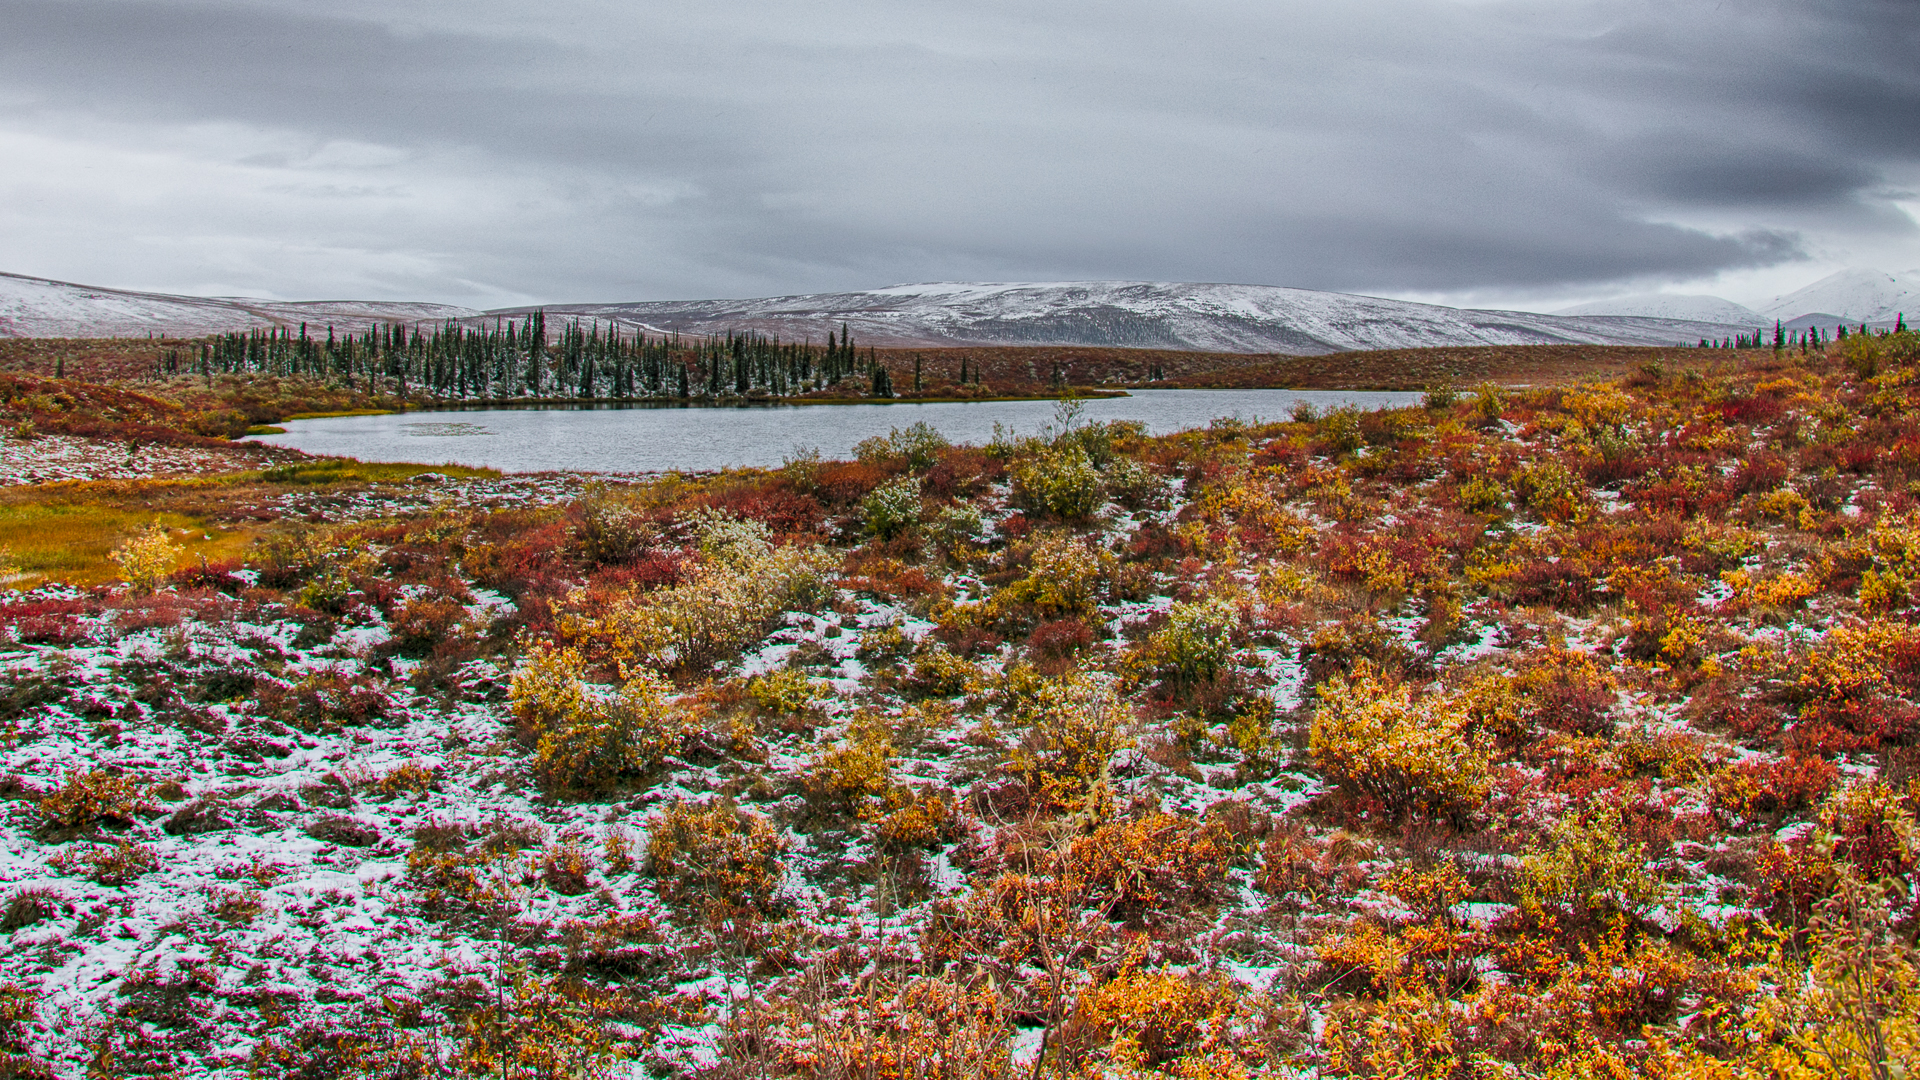 A bit of snow on the tundra.